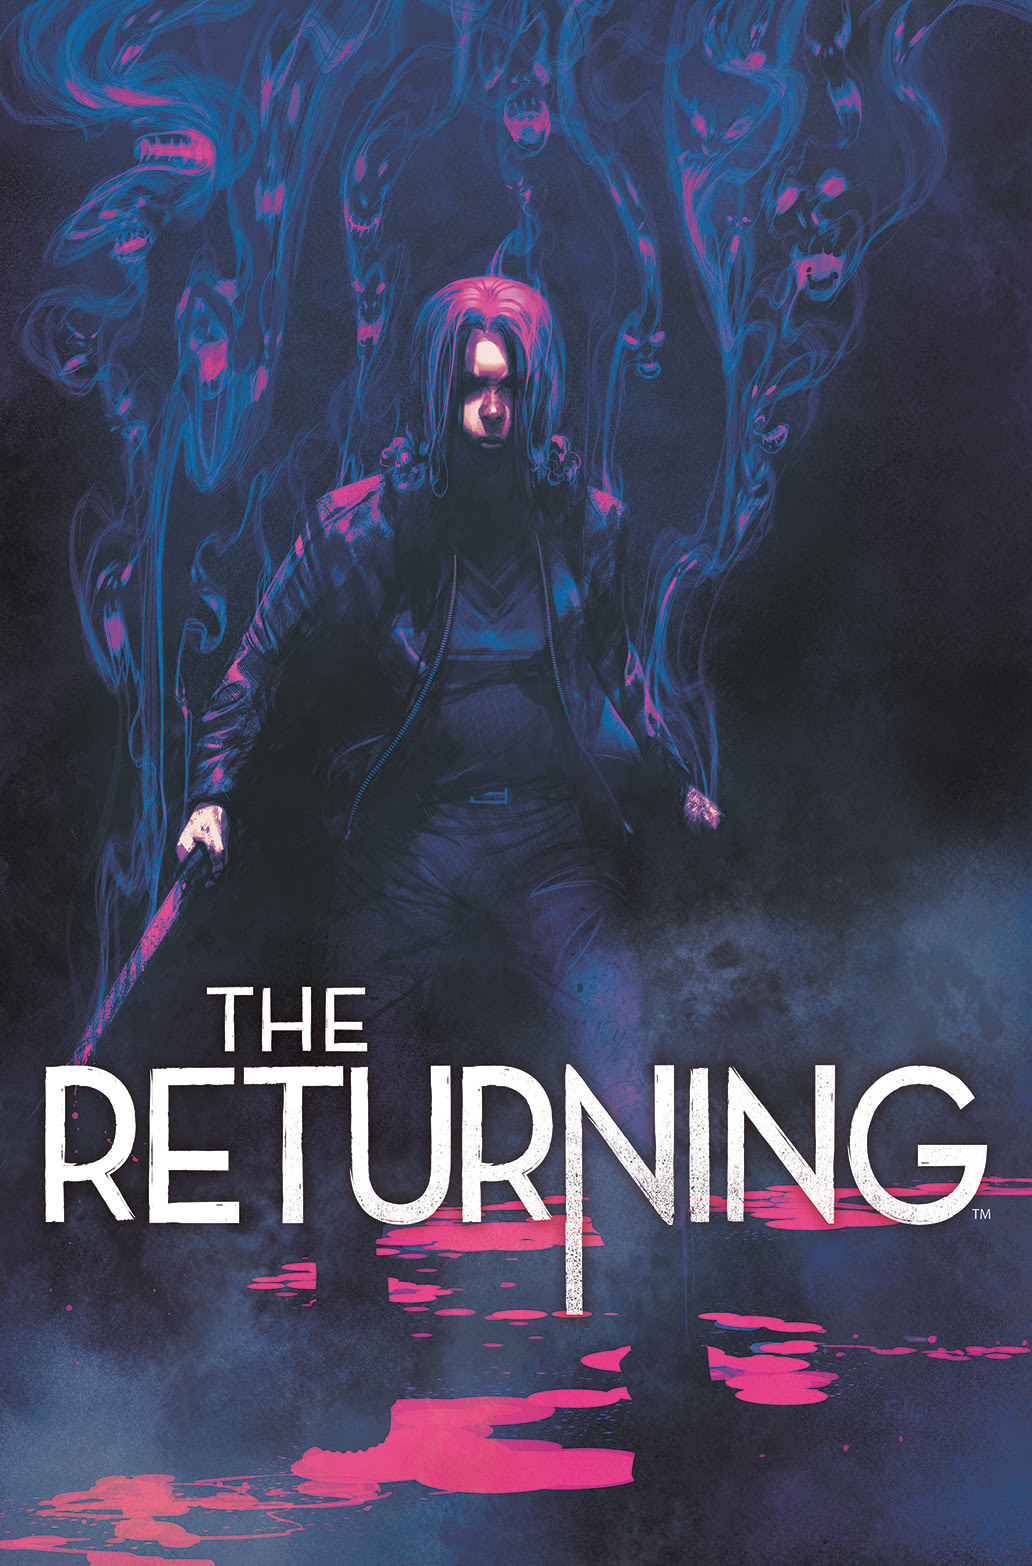 THE RETURNING #4 Cover by Frazer Irving